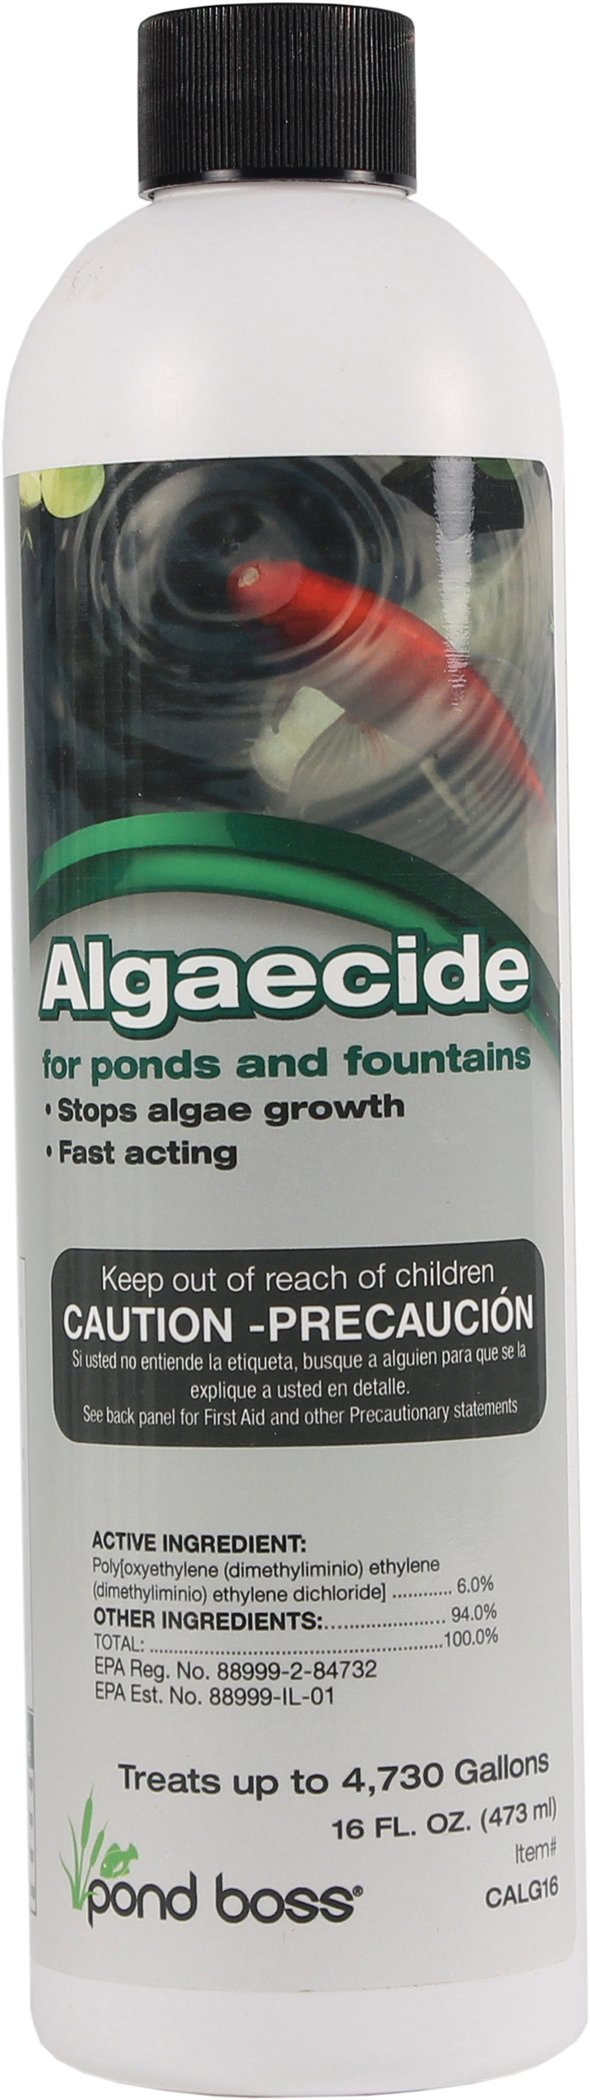 OASE 45374 AquaActiv Algaecide Ponds, Black